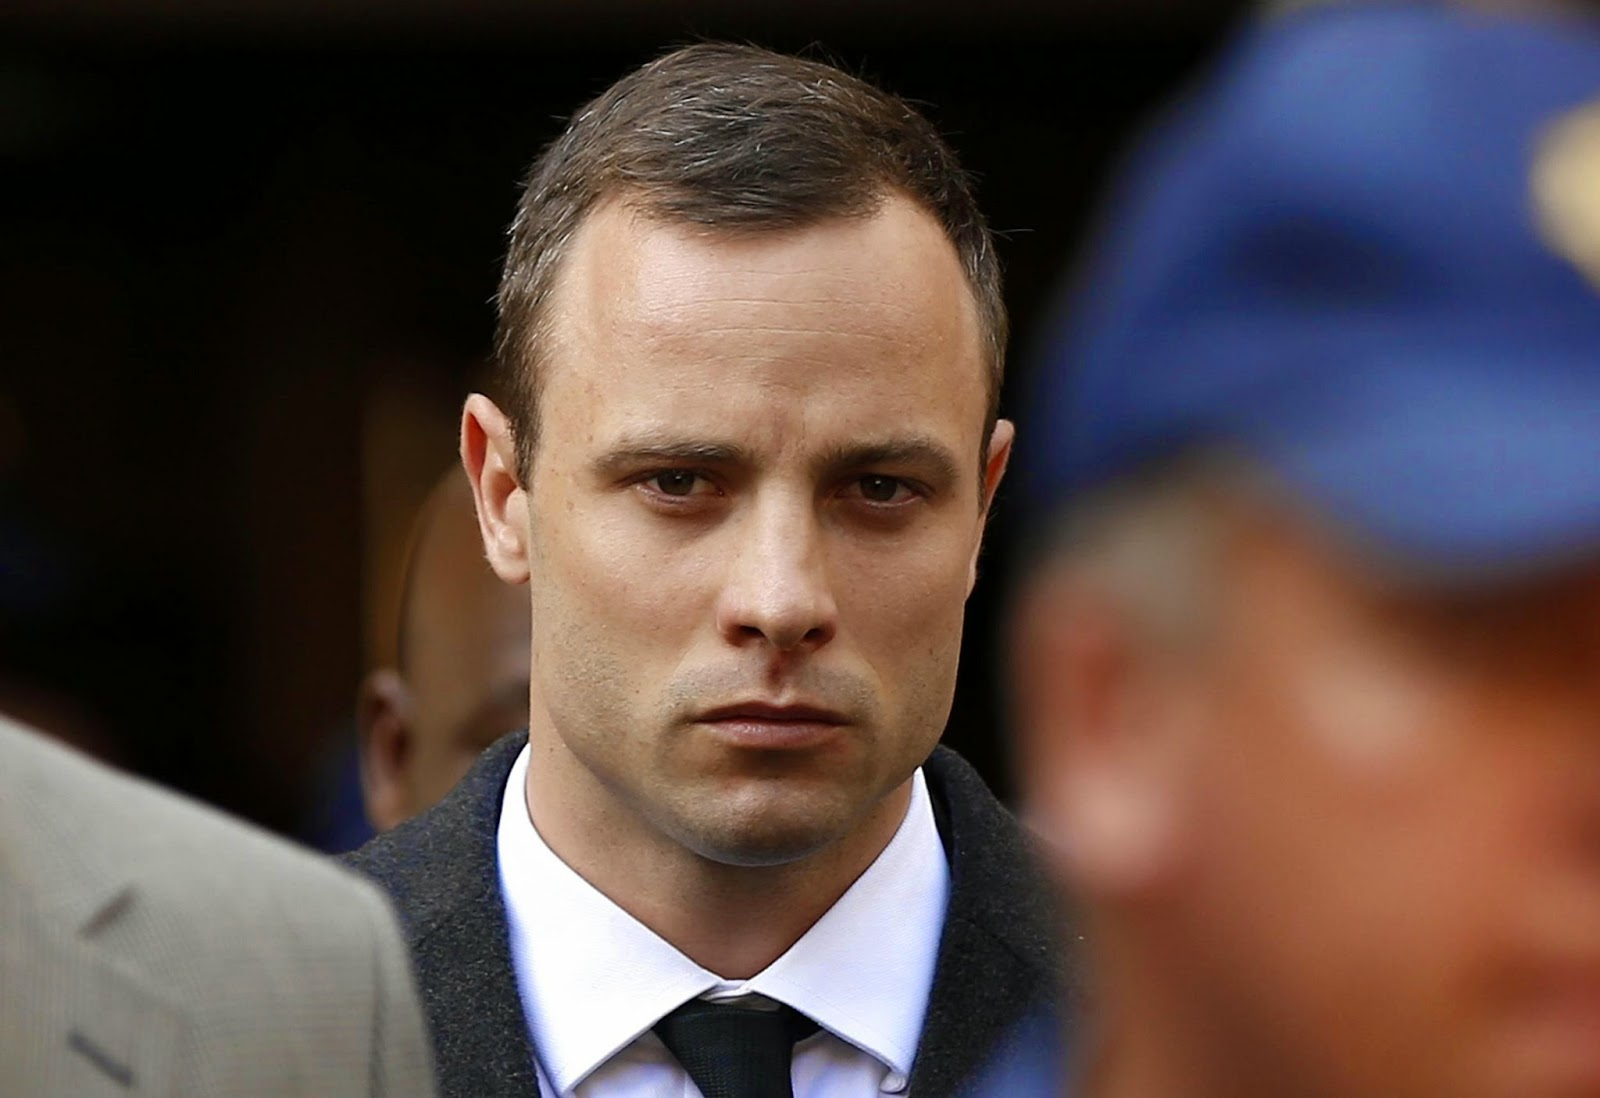 Oscar Pistorius Sentenced to 5 Years in Prison for the Killing of Reeva Steenkamp